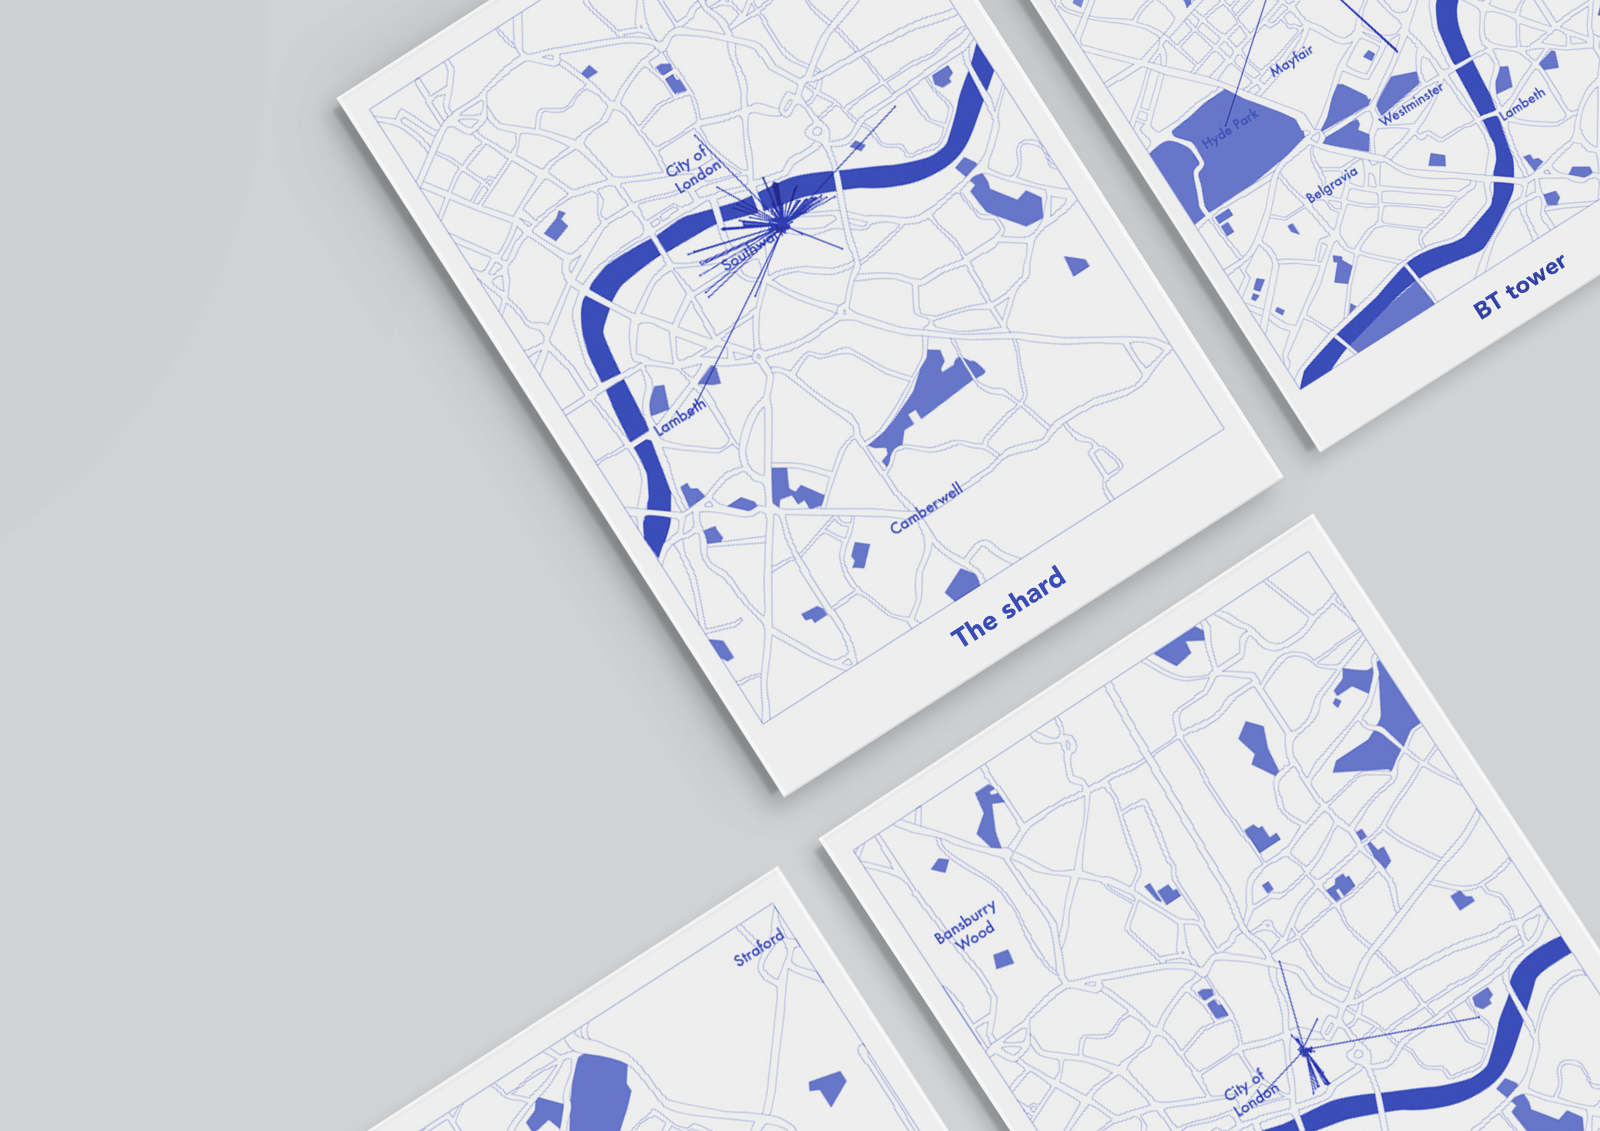 London Landmarks Map.Hot Spot Of London Landmarks Yejeelee